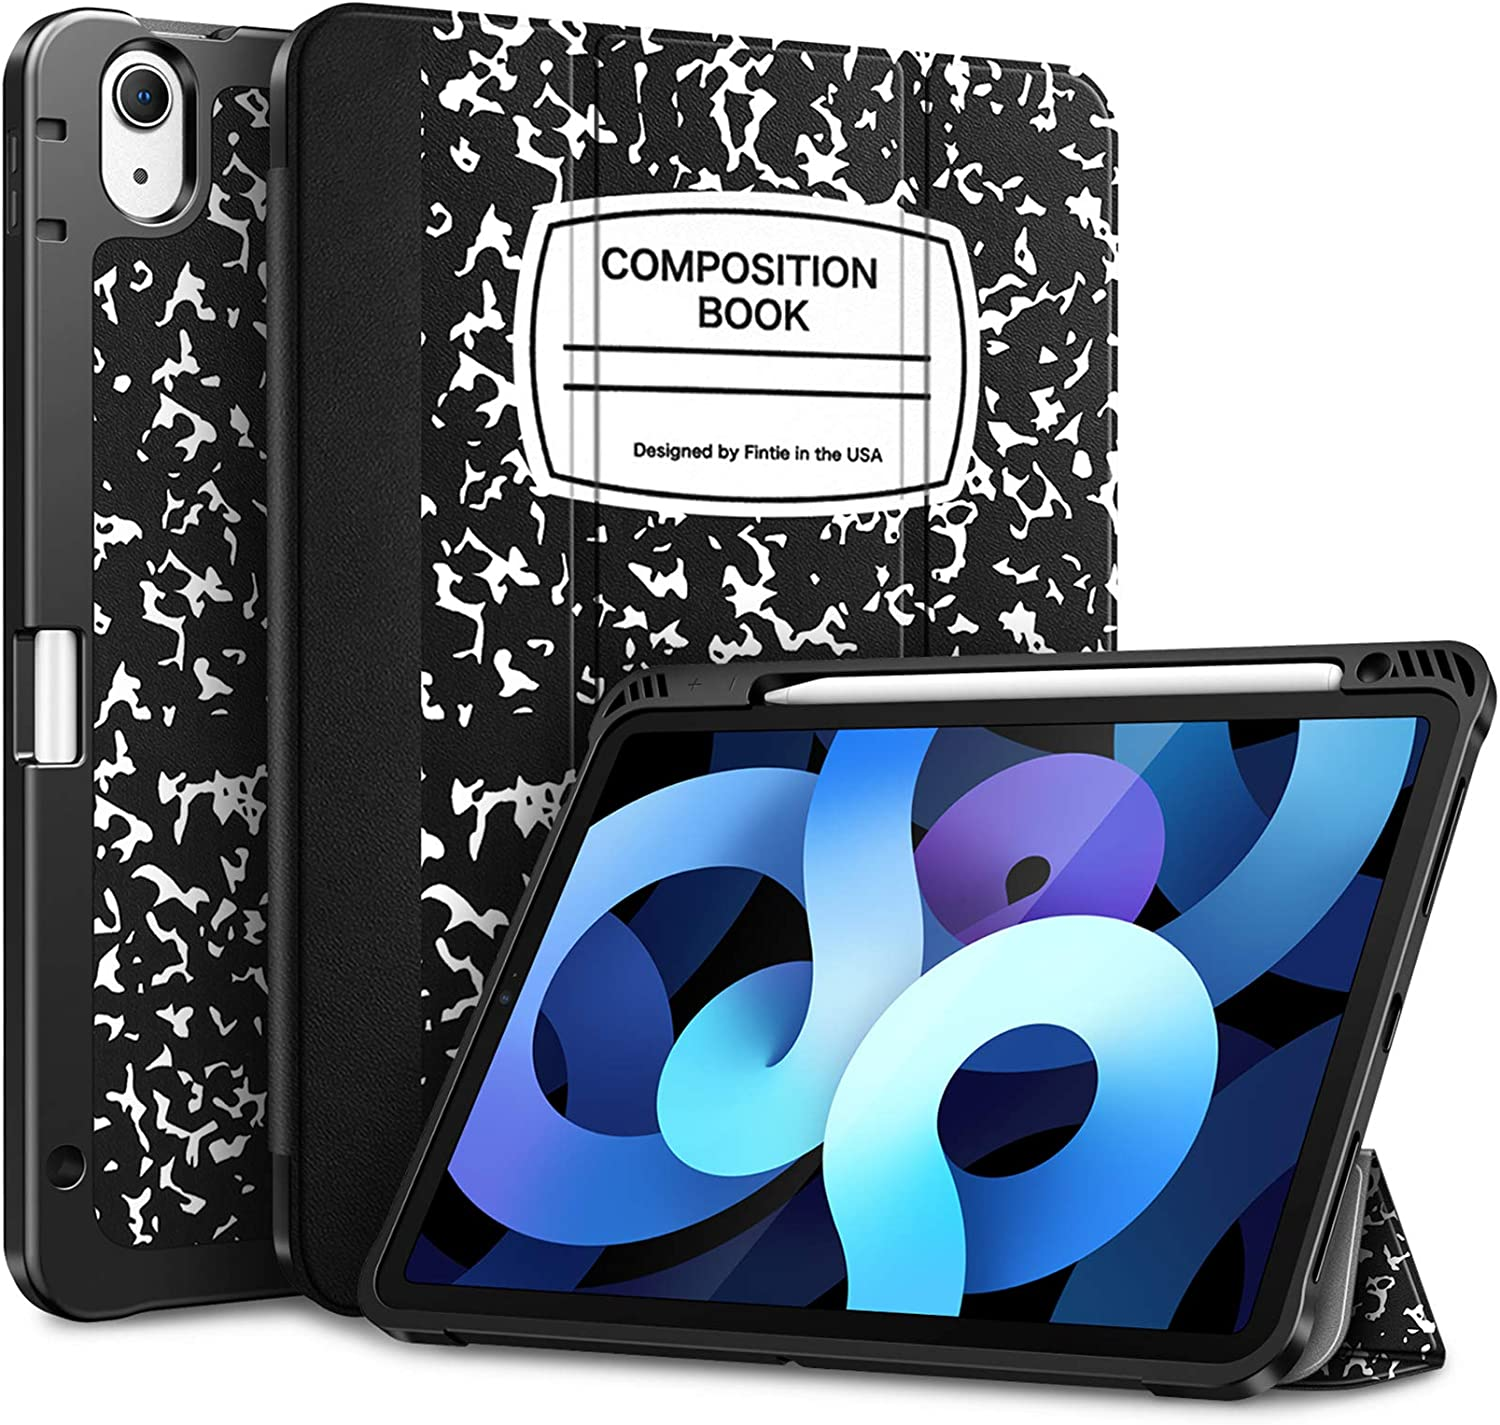 Fintie SlimShell Case for iPad Air 4 10.9 Inch 2020 with Pencil Holder - [Supports 2nd Gen Pencil Charging] Soft TPU Stand Back Cover, Auto Wake/Sleep for iPad Air 4th Generation, Composition Book